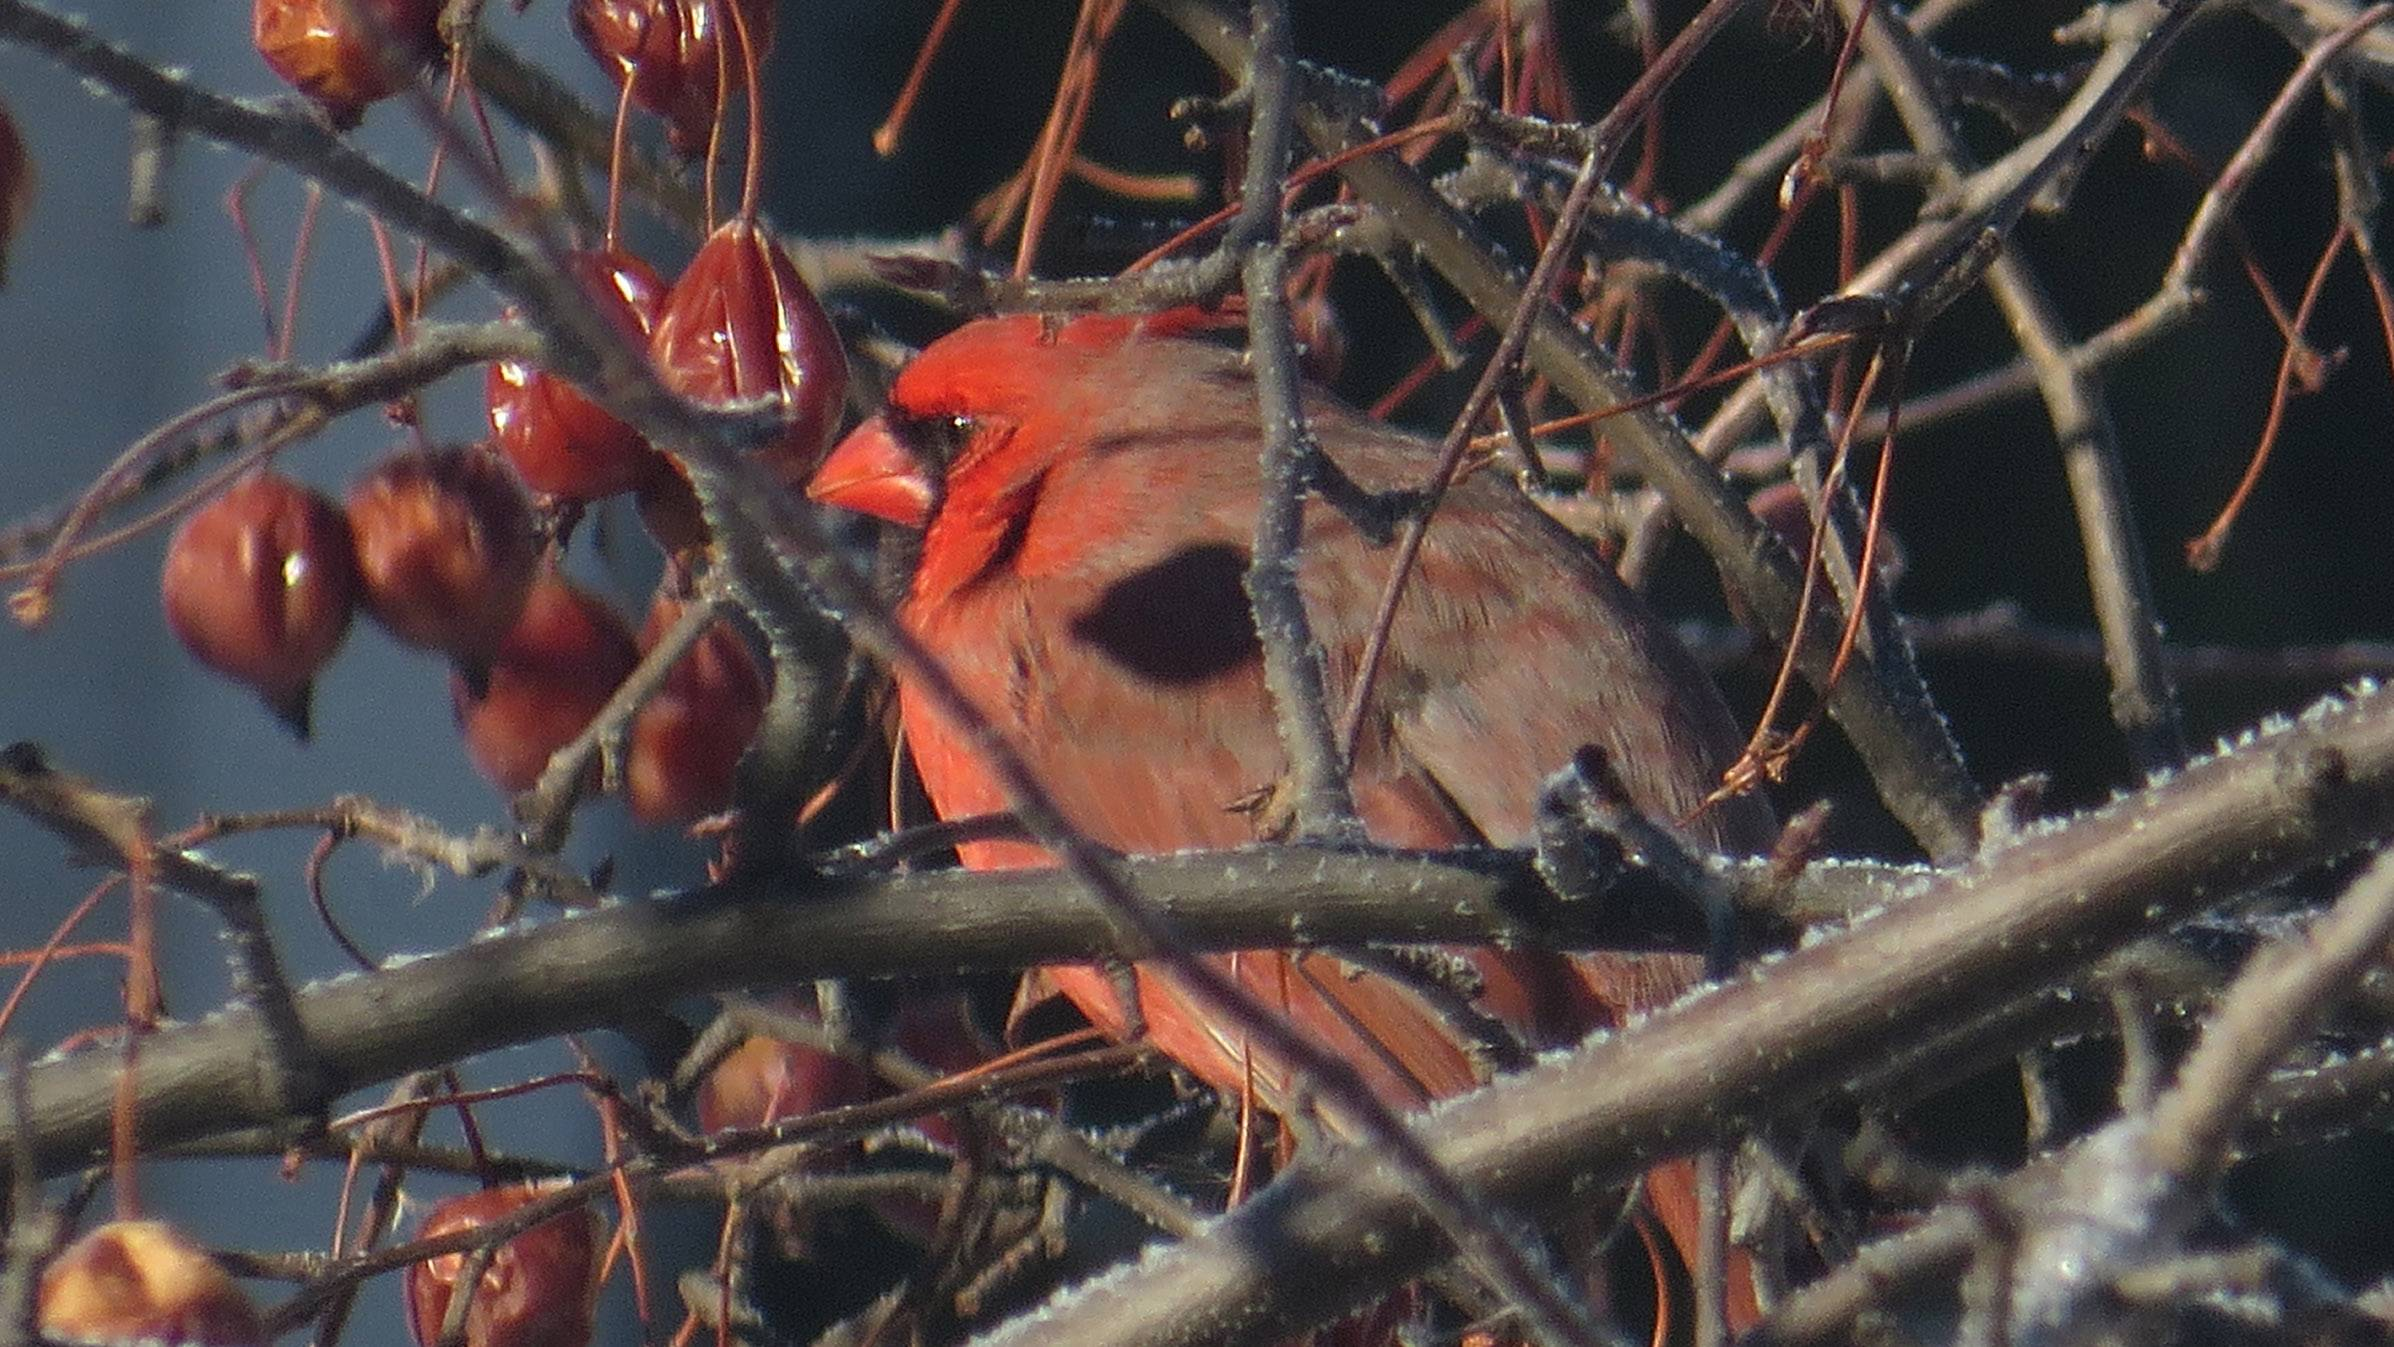 The first cardinal sighting of 2014 on the morning of February 3rd in Lake Villa. The color of the bird blends into the natural color of the crabtree and crabapples while a light frost settles on the branches.